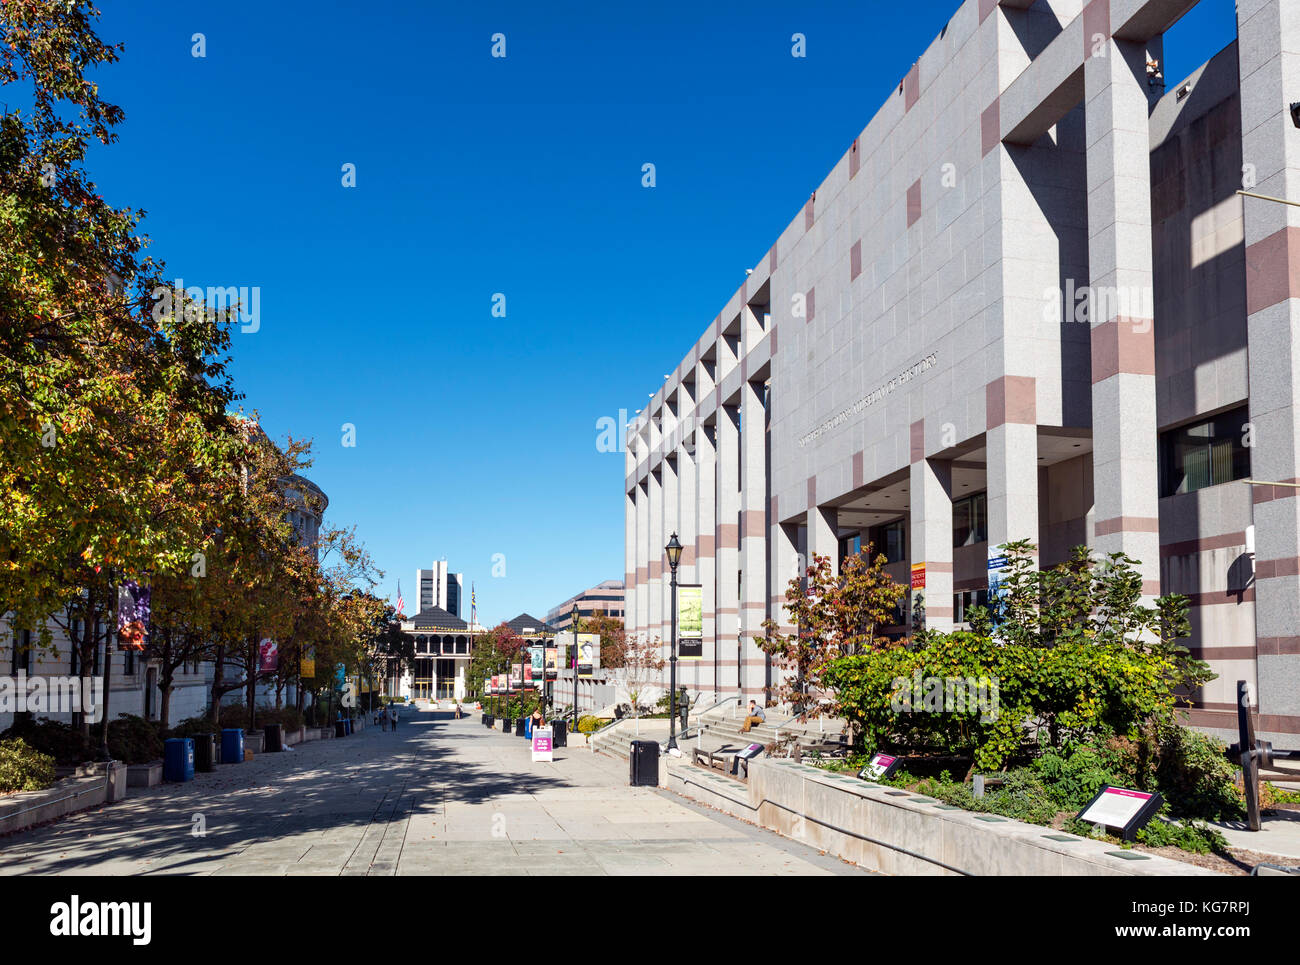 Museums on Bicentennial Plaza in dowtown Raleigh, North Carolina, USA. The North Carolina Museum of History is on - Stock Image